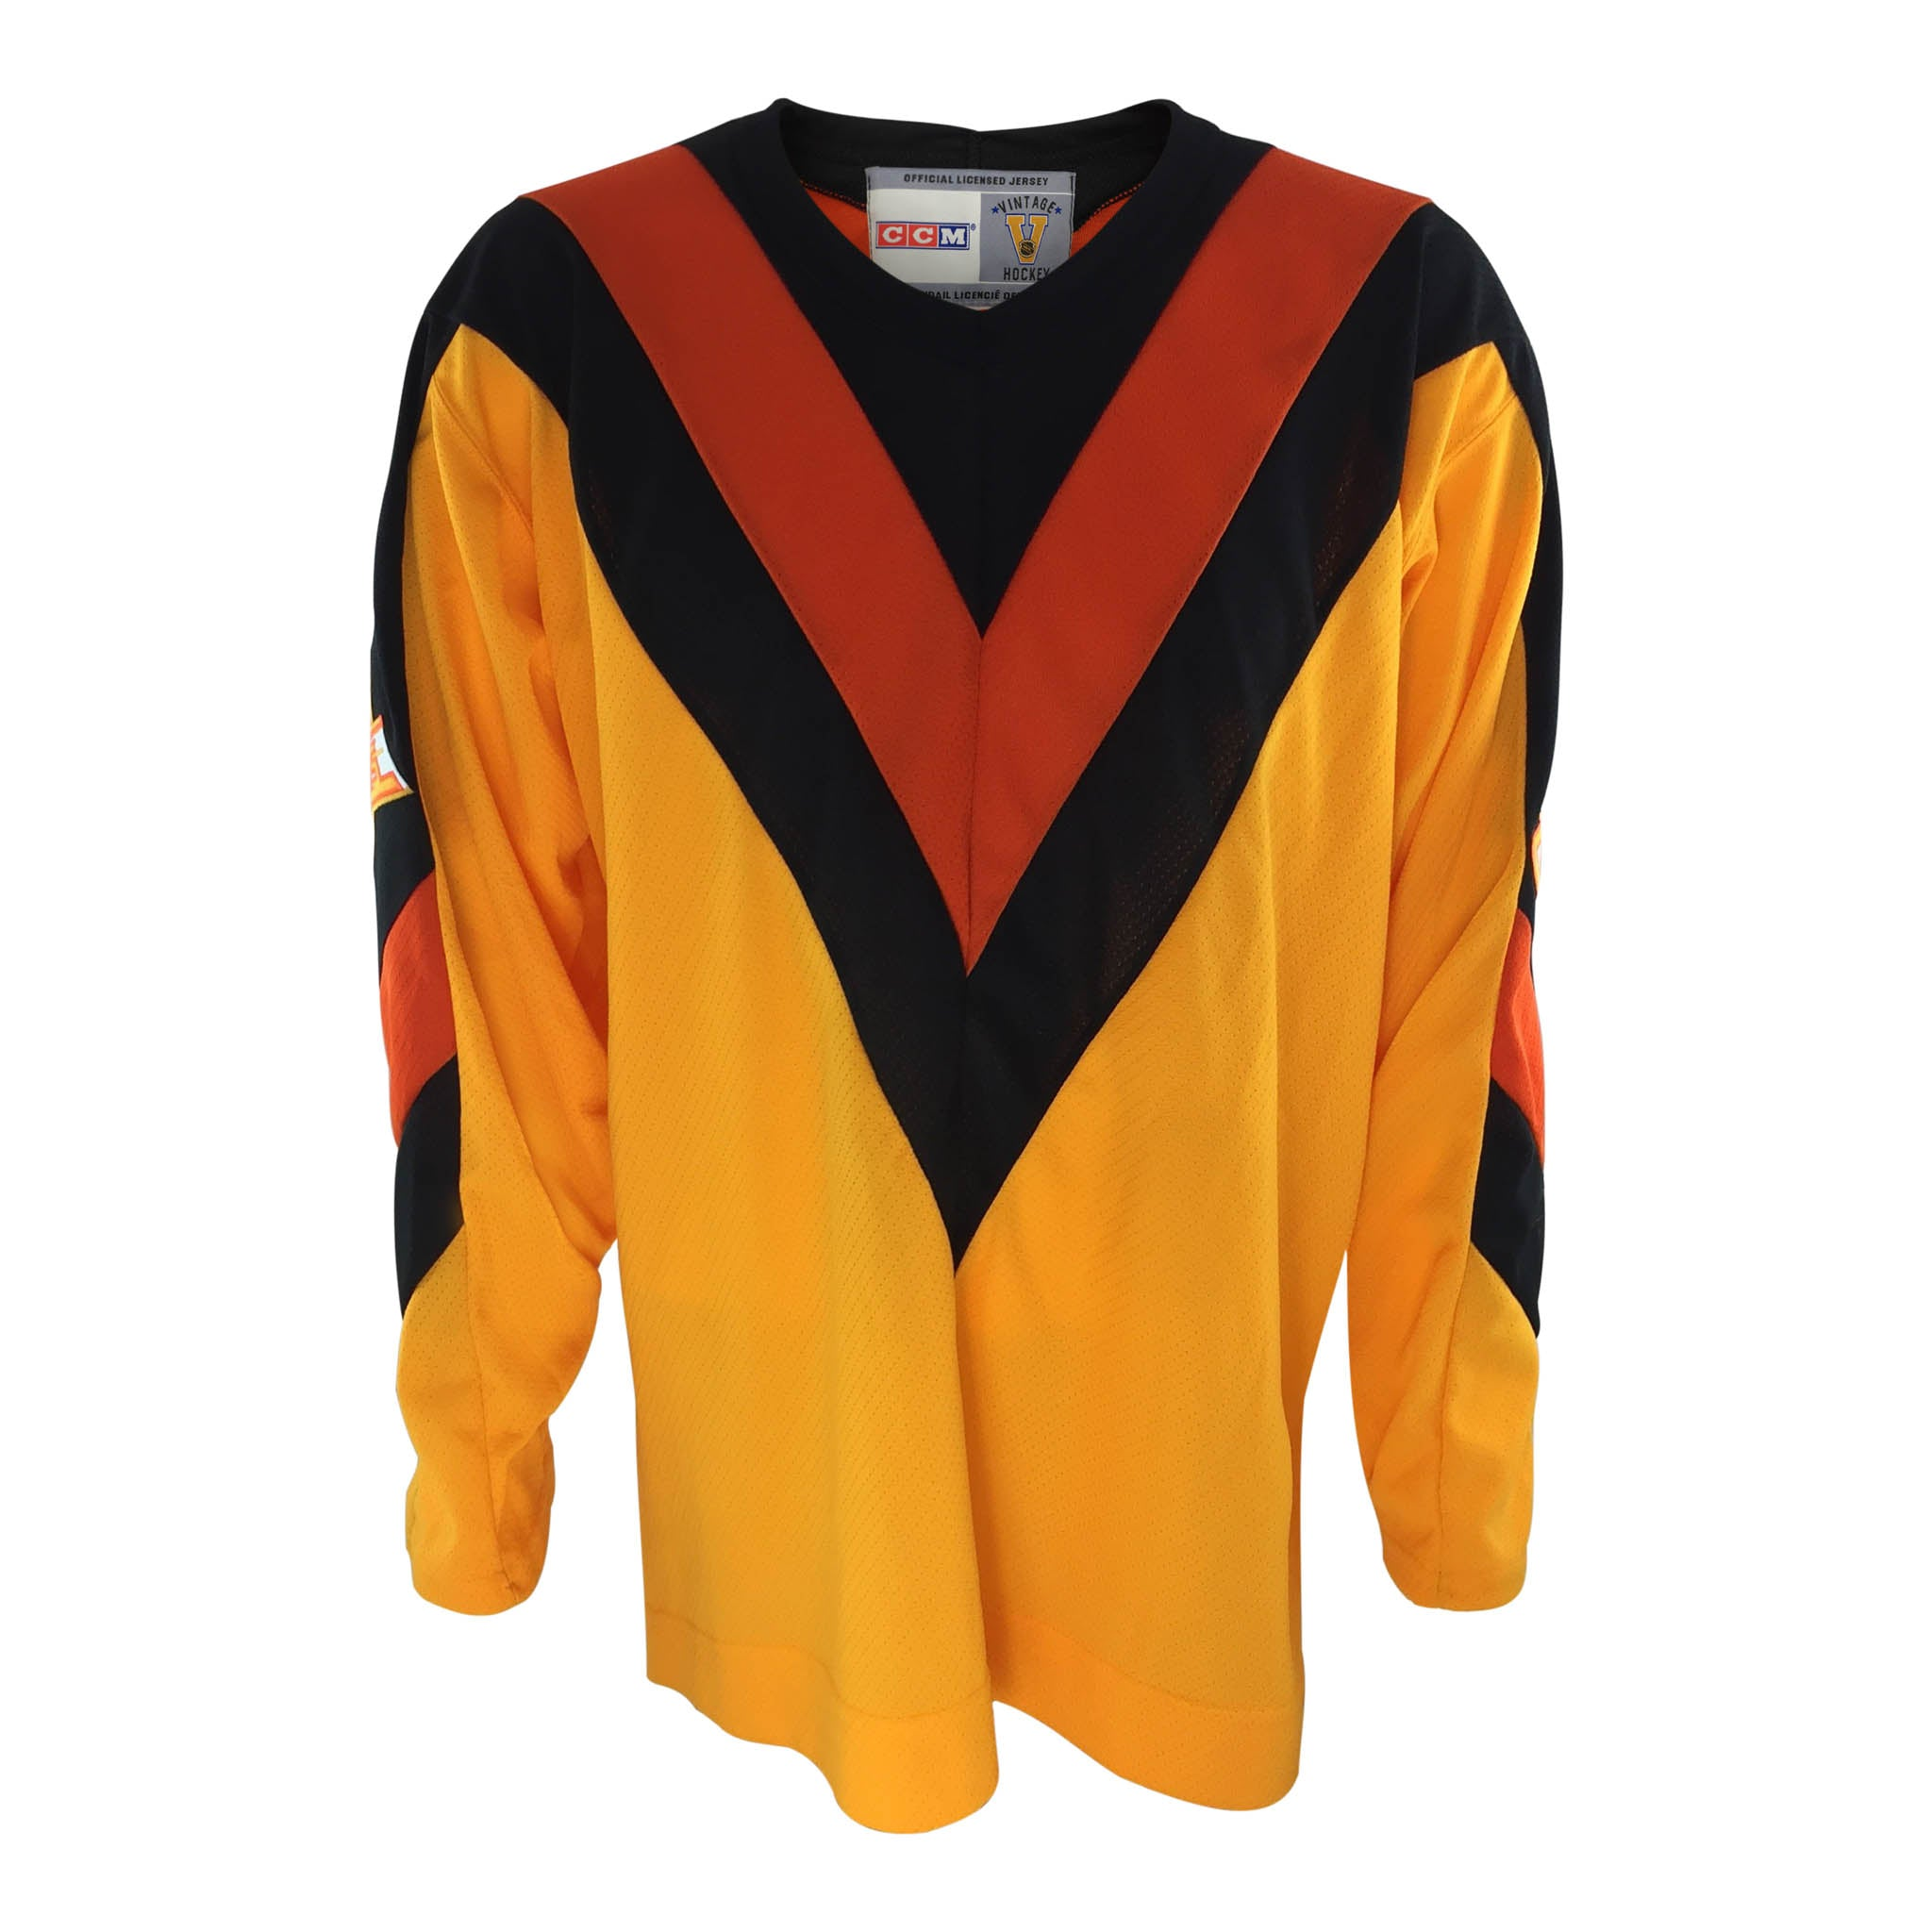 0c4861a59 ... closeout vancouver canucks vintage yellow jersey a5178 58065 ...